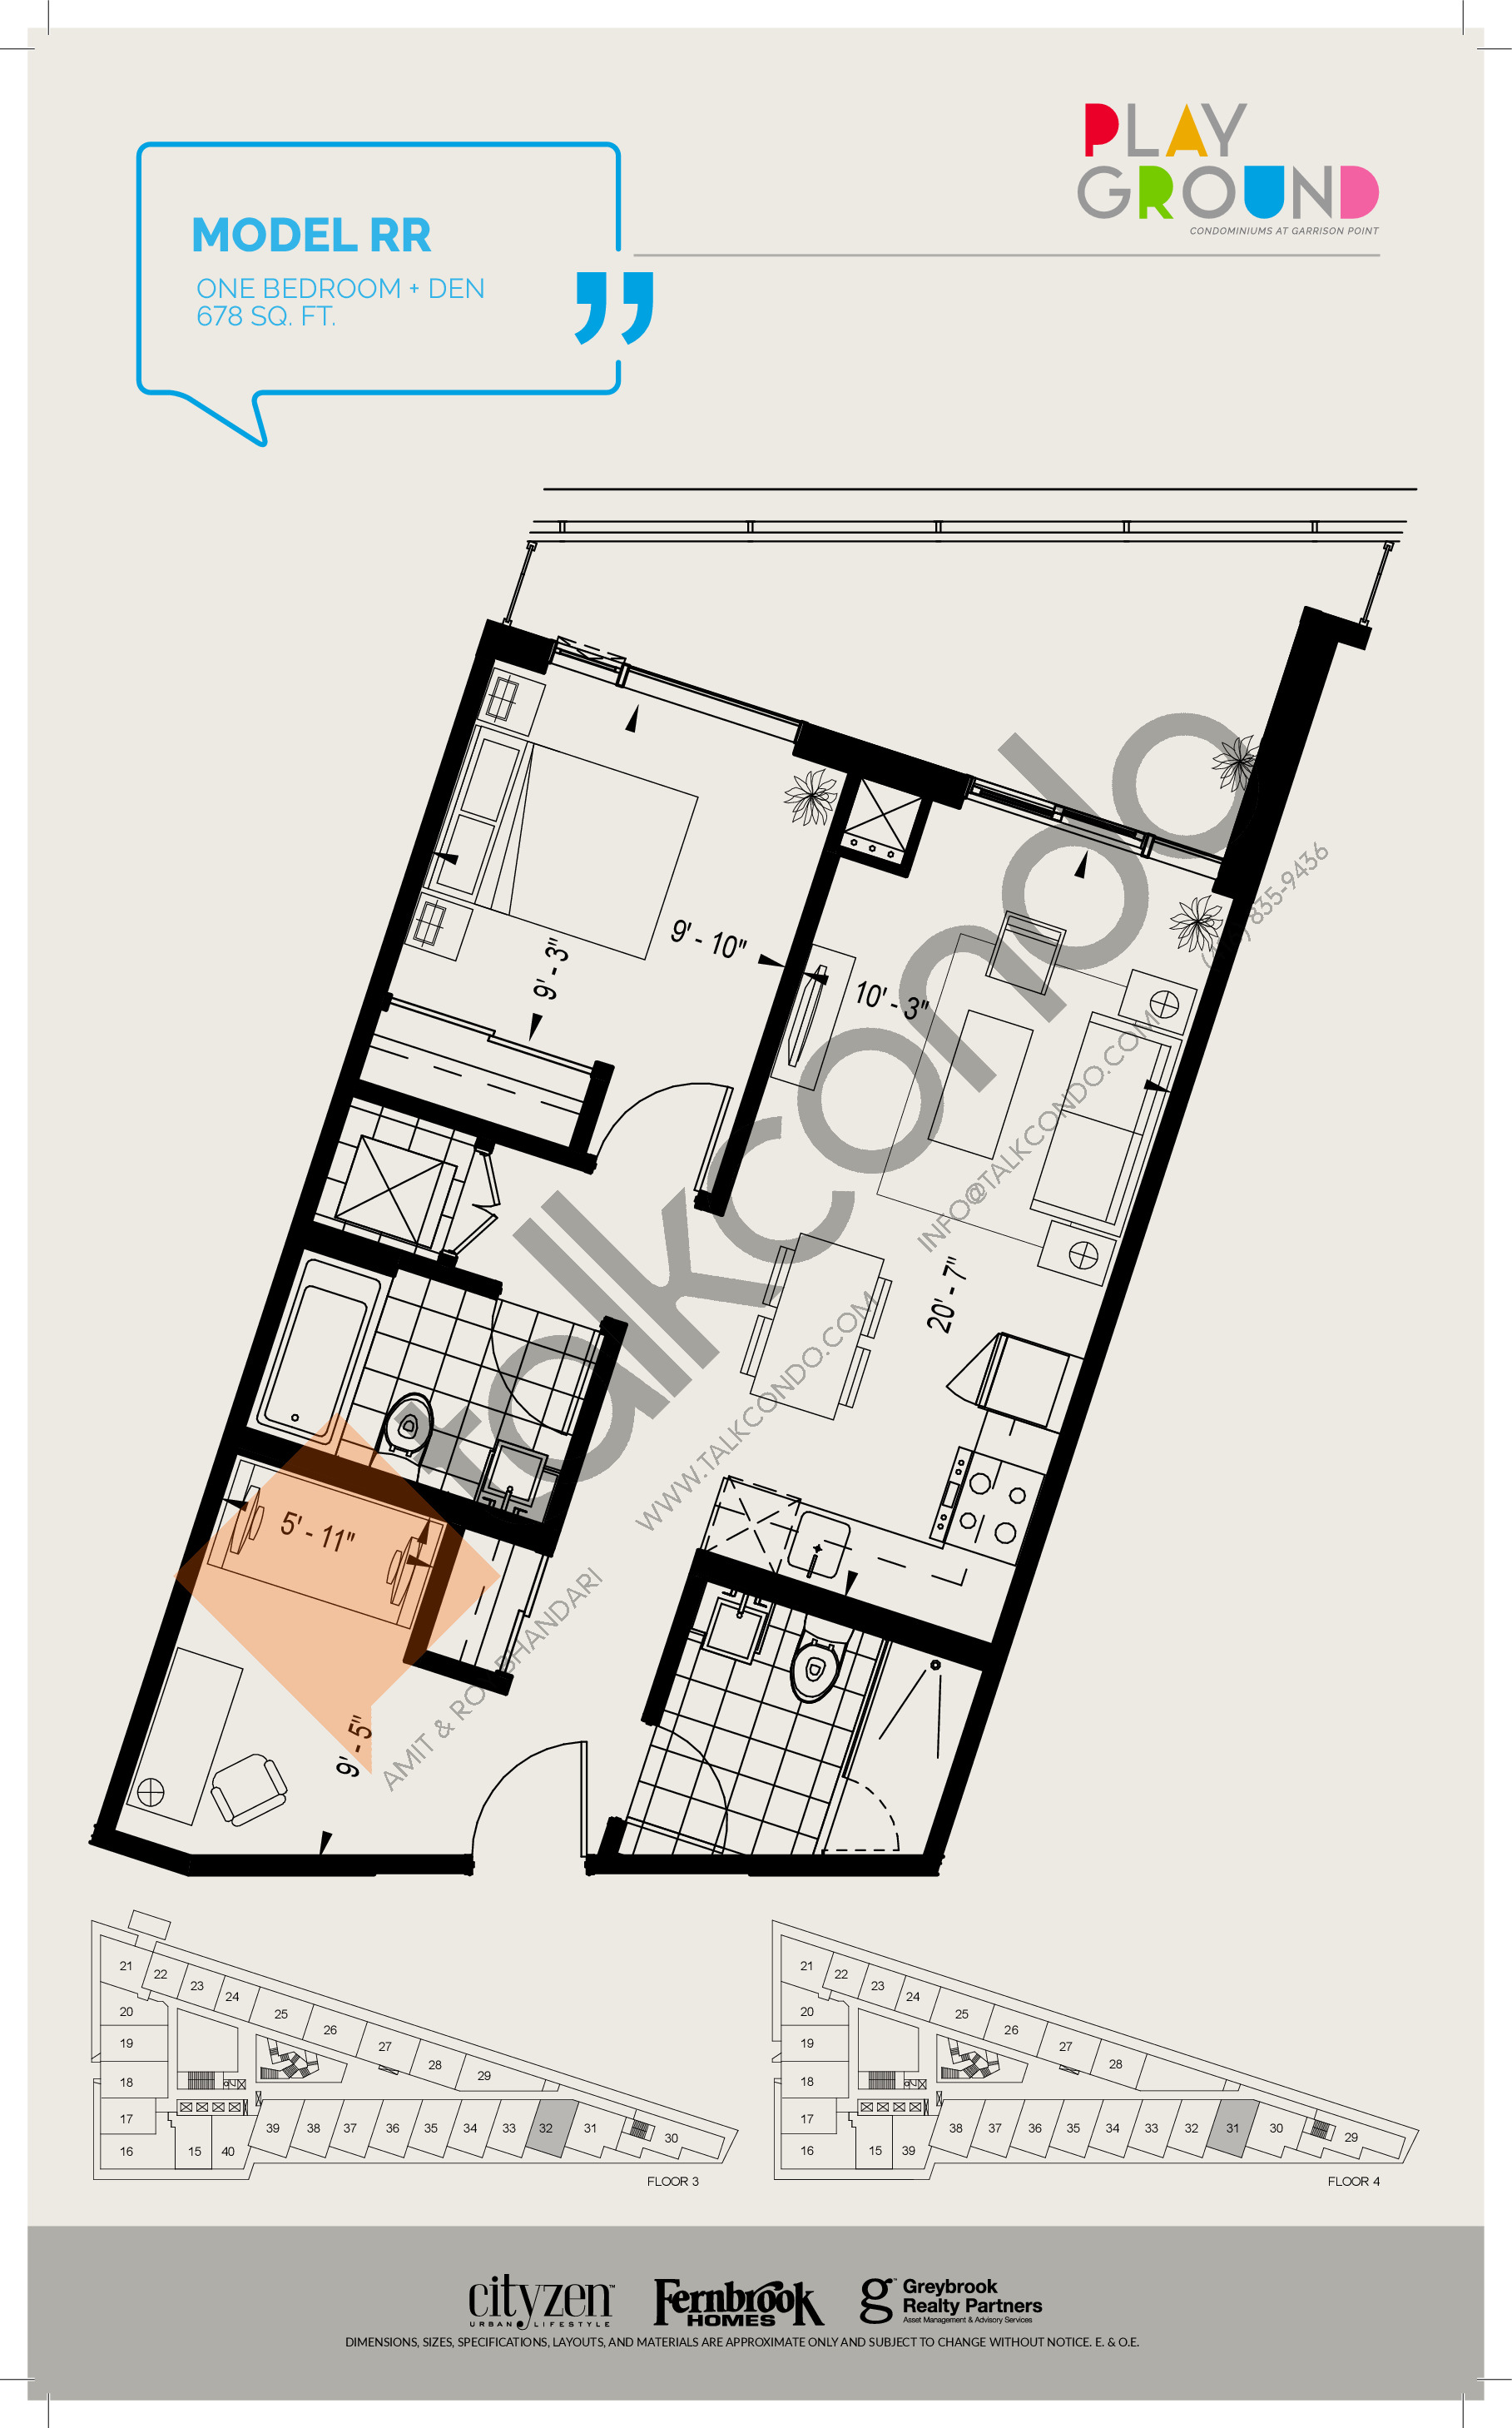 Model RR Floor Plan at Playground Condos at Garrison Point - 678 sq.ft